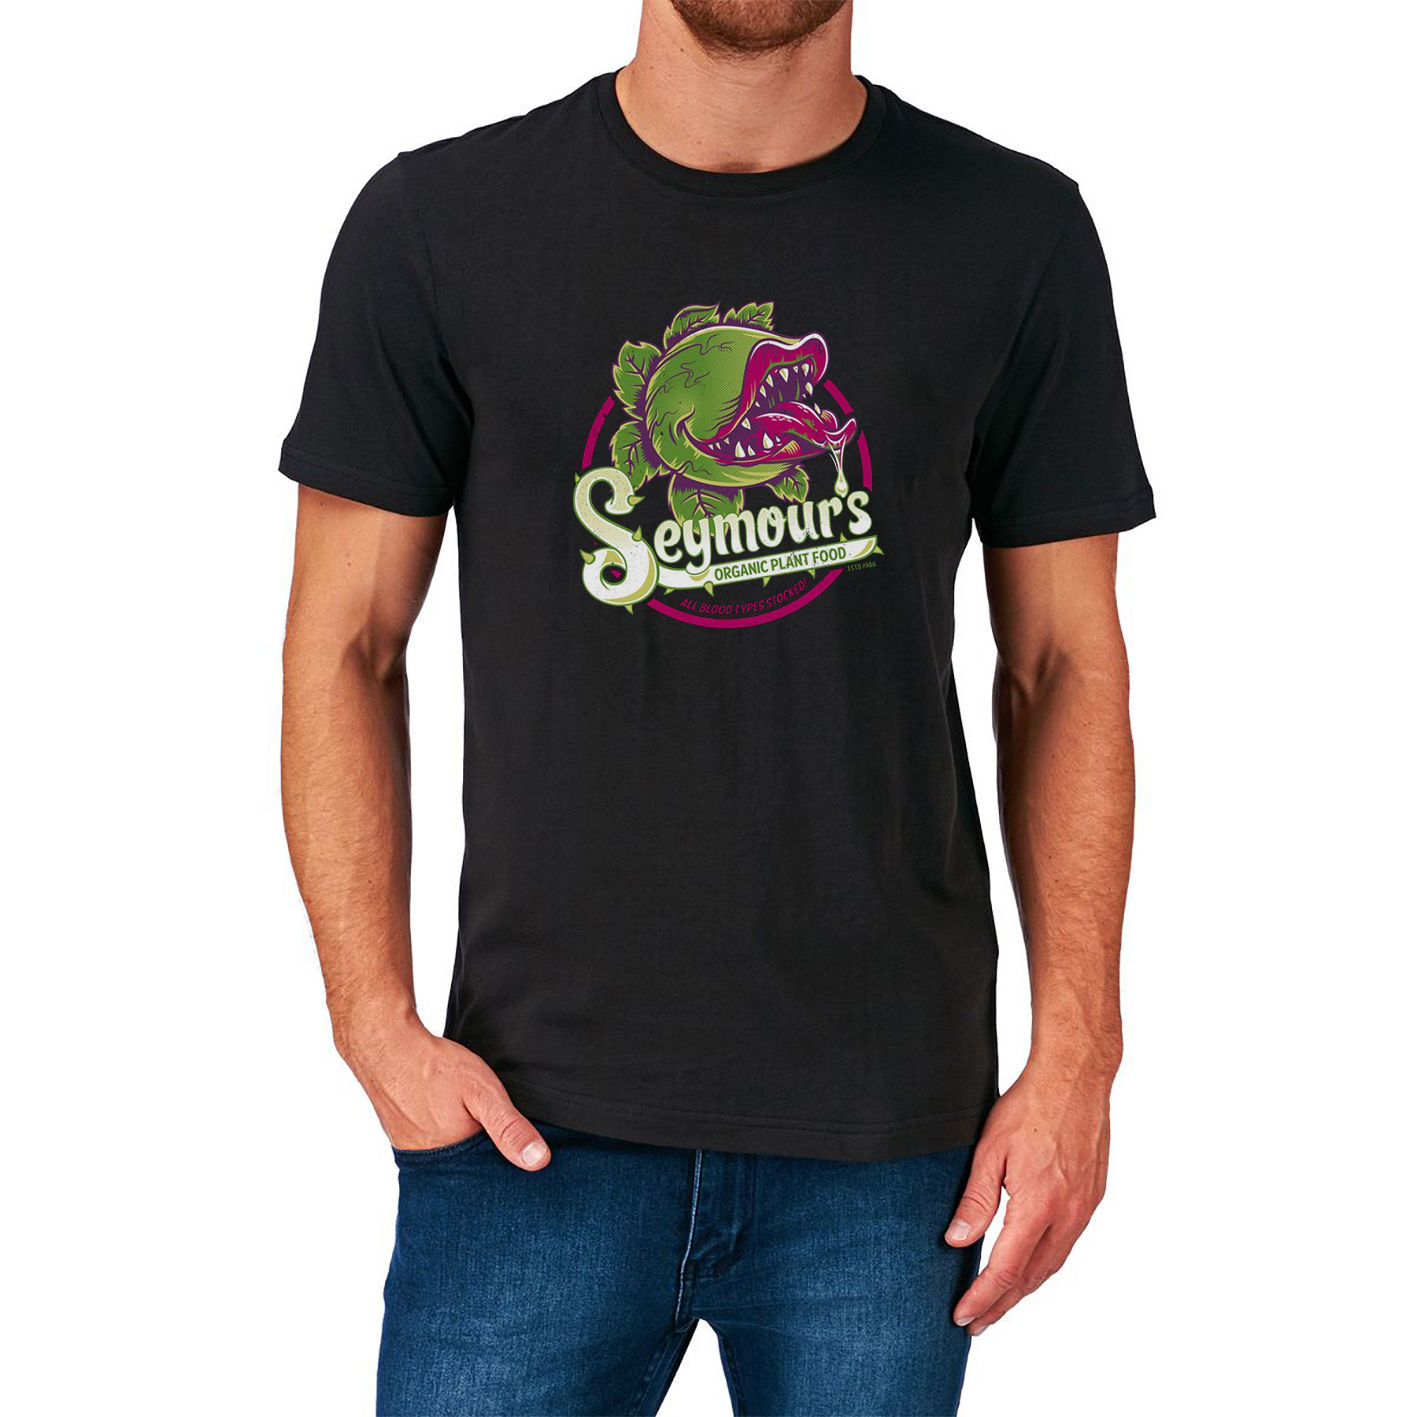 SEYMOURS ORGANIC PLANT FOOD T SHIRT LITTLE SHOP OF HORRORS 1980S CULT MOVIE